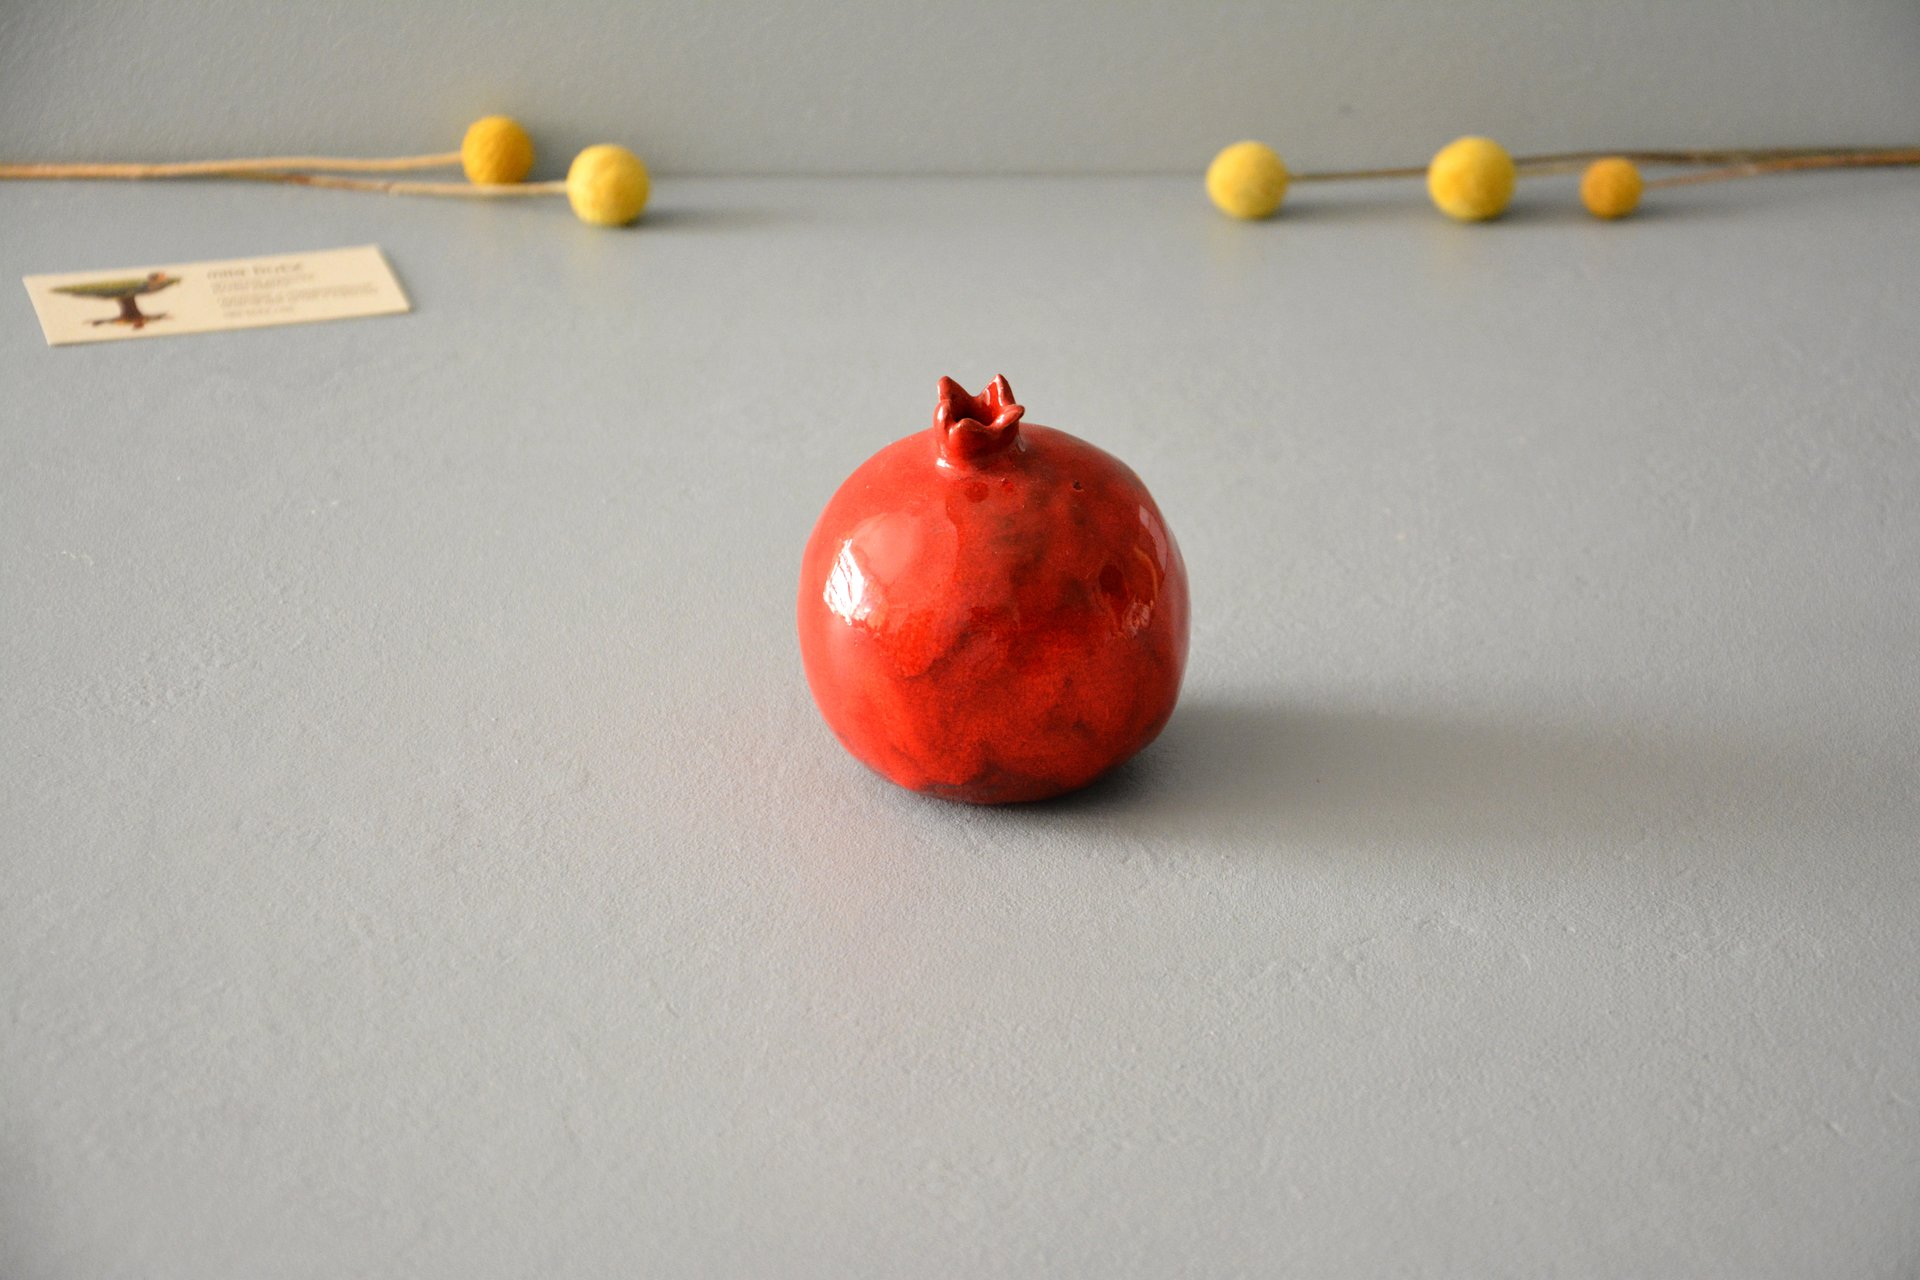 Ceramic Pomegranate red, height - 9,5 cm, photo 1 of 4.